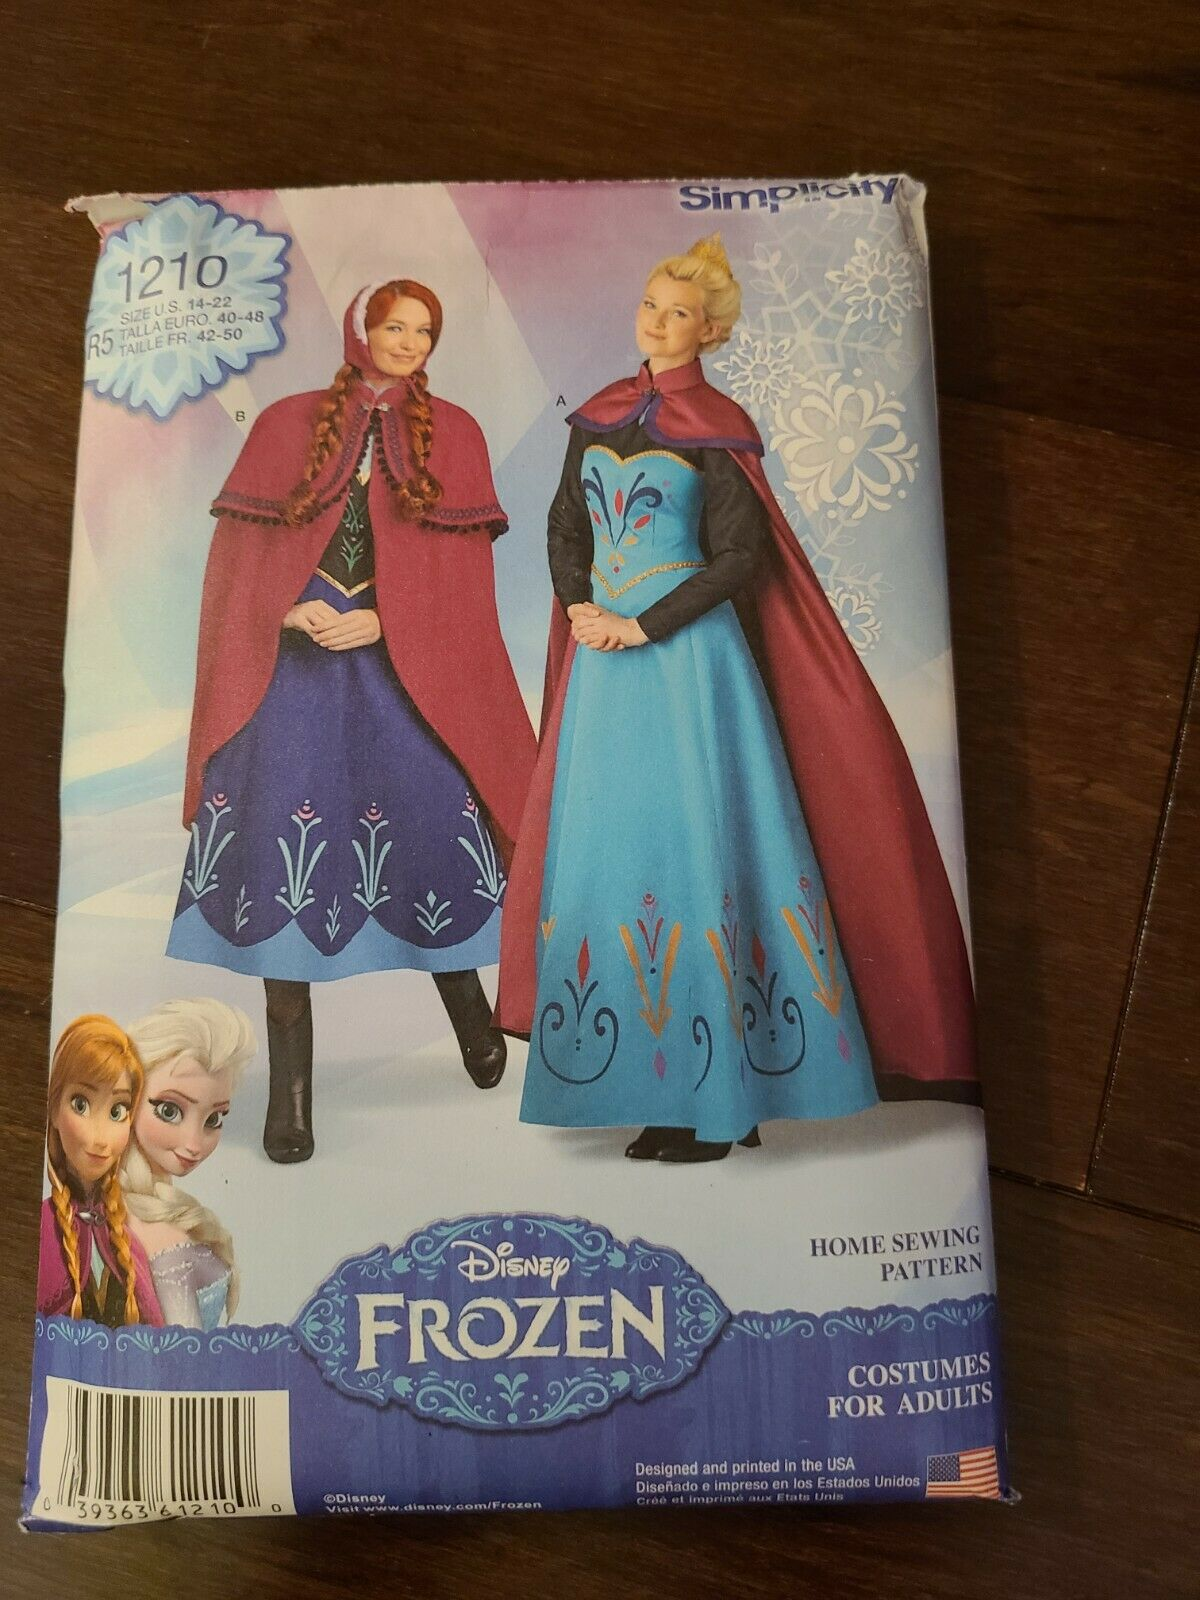 Simplicity Sewing Pattern 1210: Disney Frozen Costumes for Misses White, Paper Size R5 14-16-18-20-22